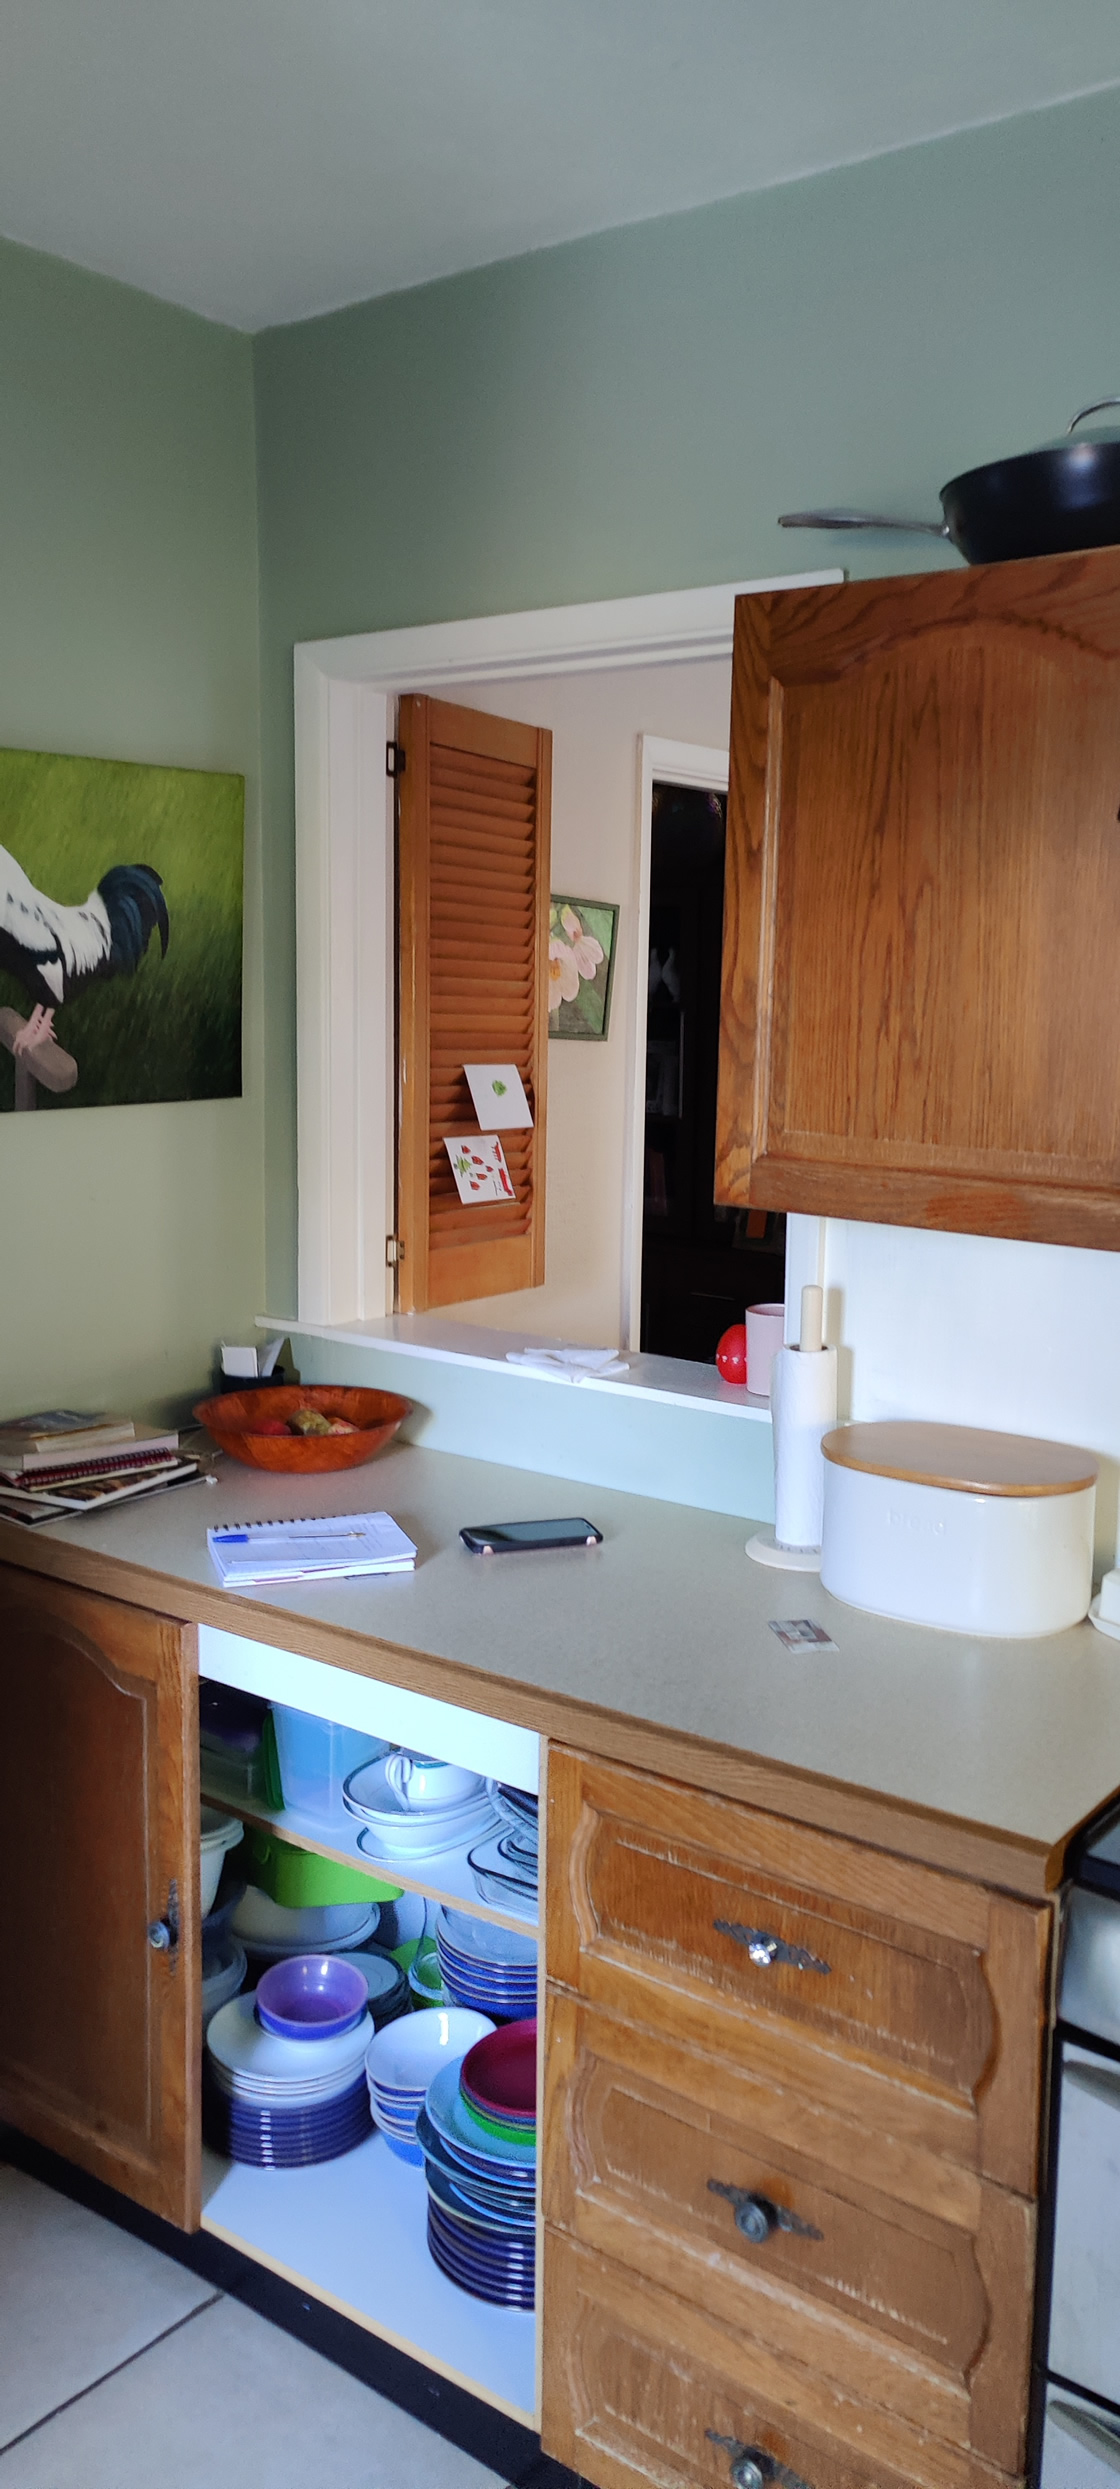 OpenPlan Kitchen Transformation Before Pictures - Punchbowl (2)